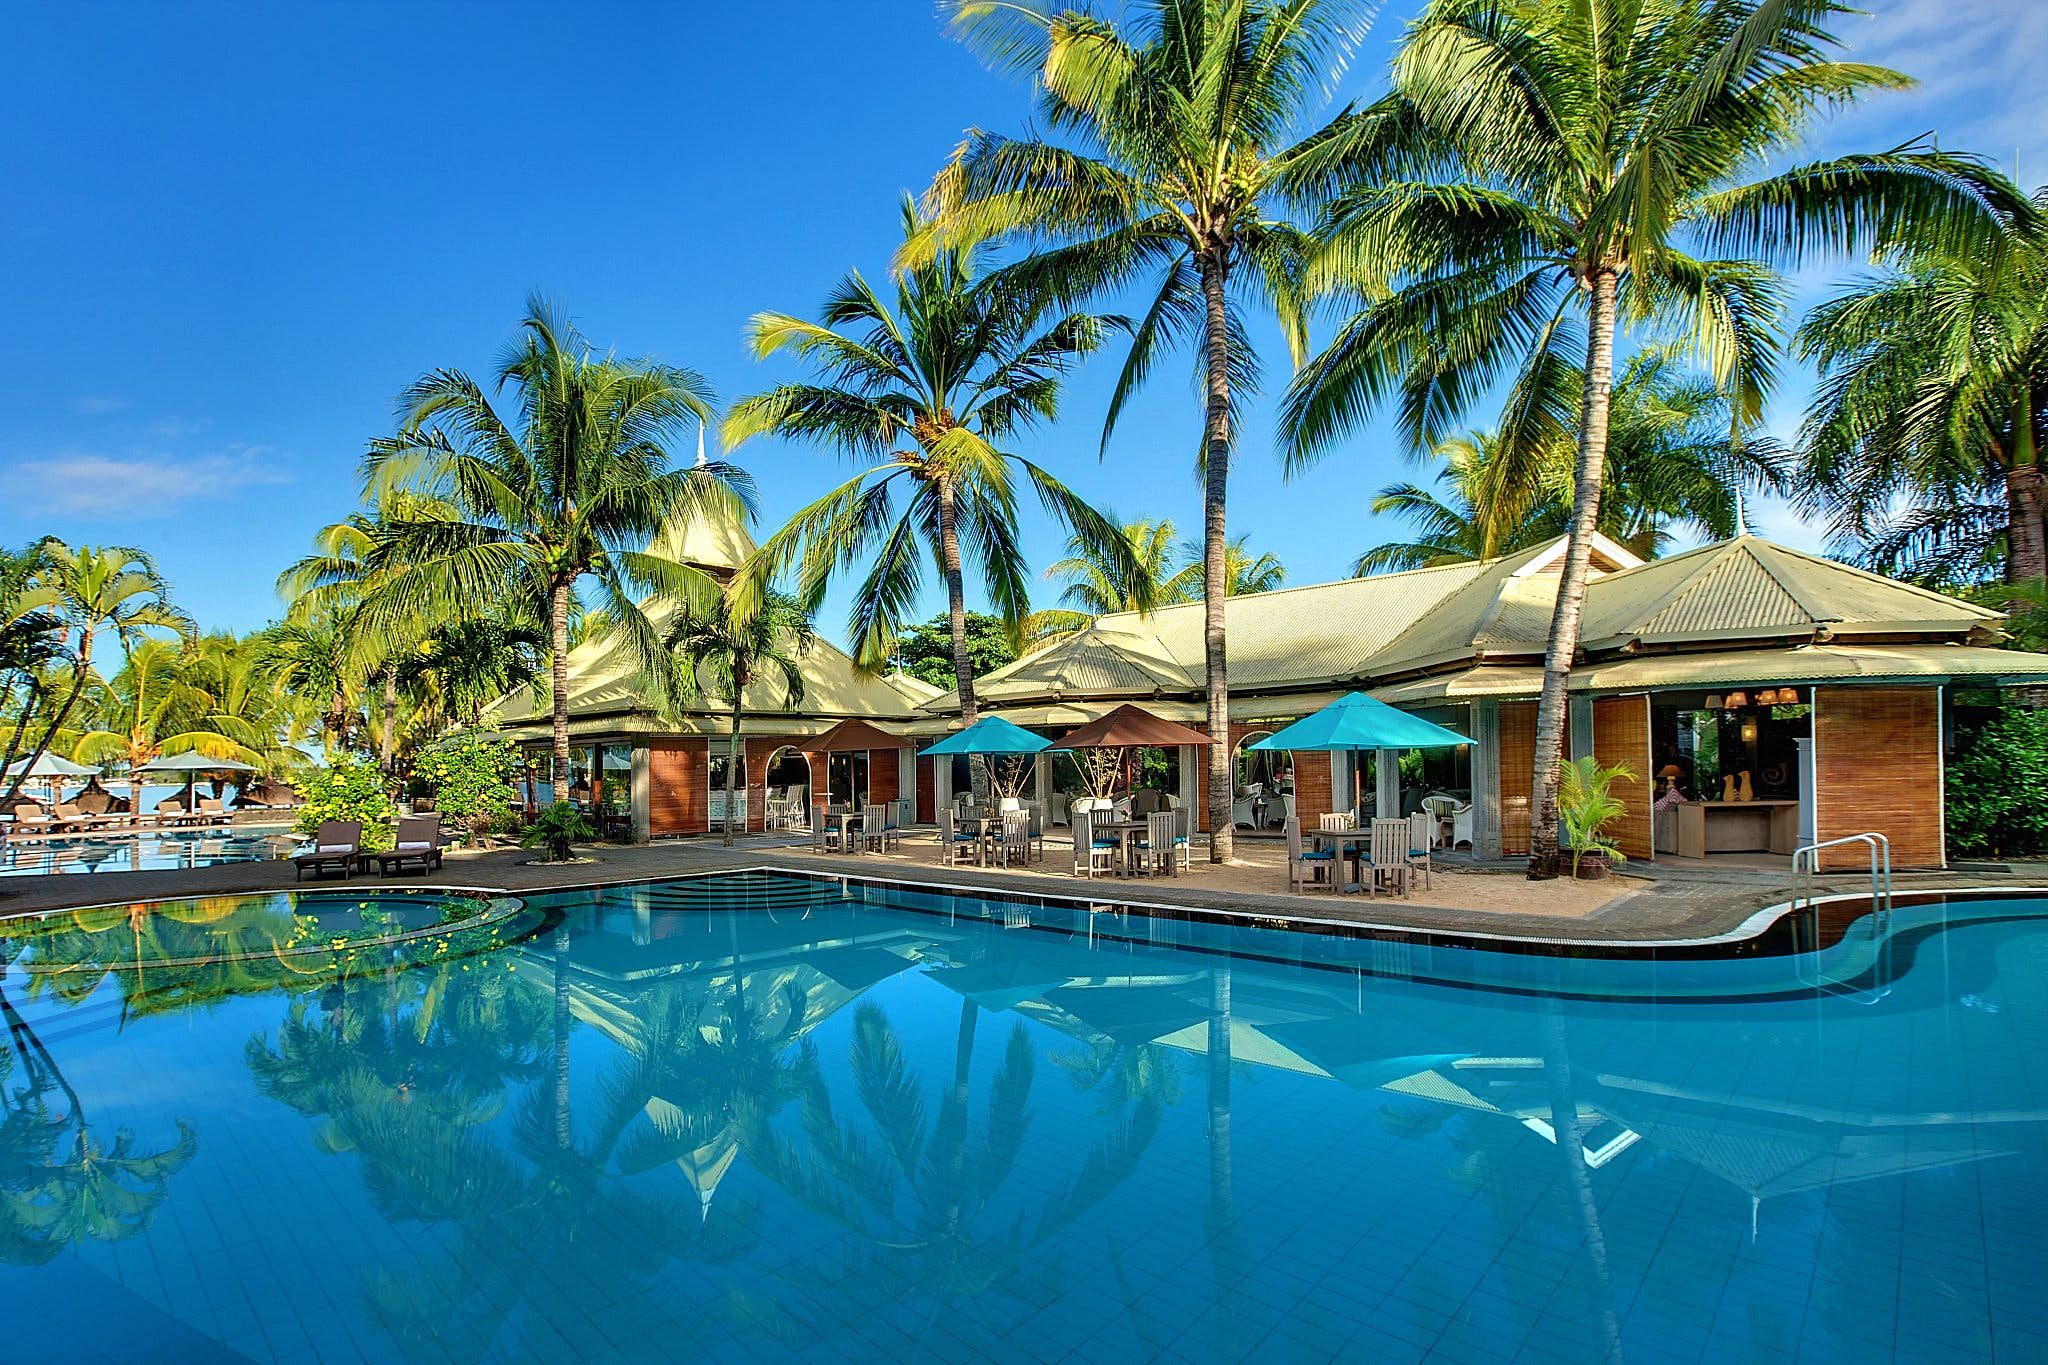 A swimming pool at the Veranda Grand Baie Mauritius, on a sunny day. Palm trees and awnings are visible poolside, along with chairs and parasols